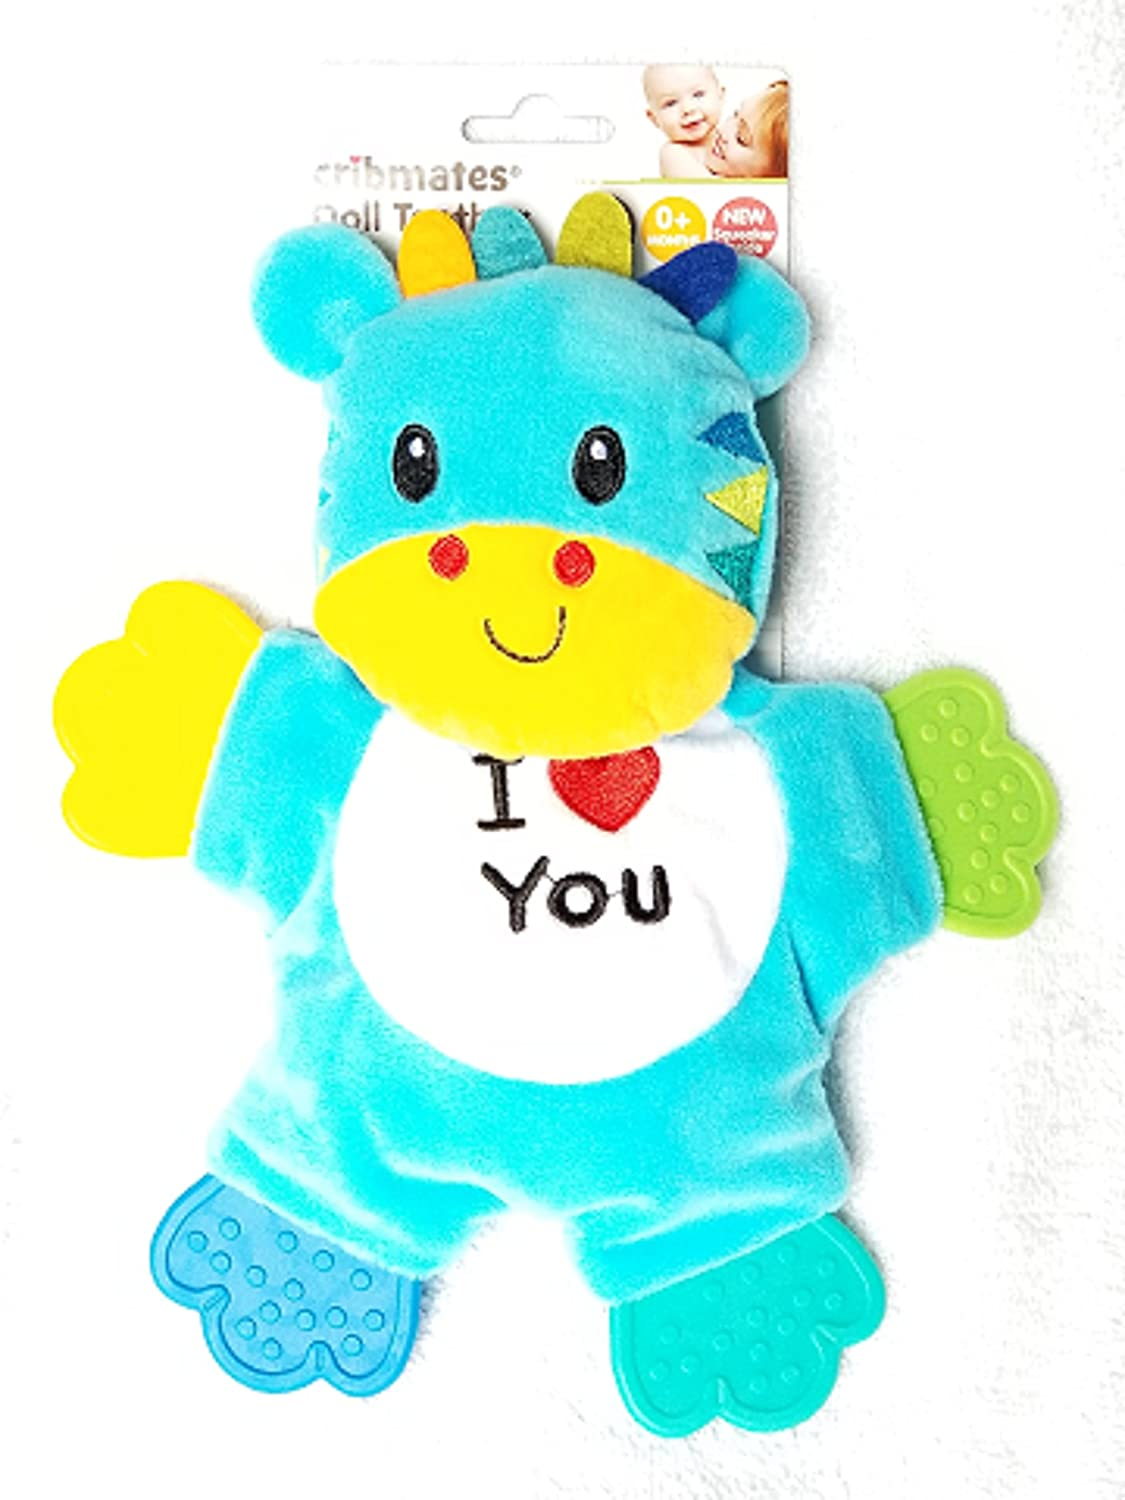 Cribmates Teether Doll Teal Blue I LOVE YOU Tiger with Four Multi-Color Teether Paws and Soft Crinkle Body Regent Baby Products